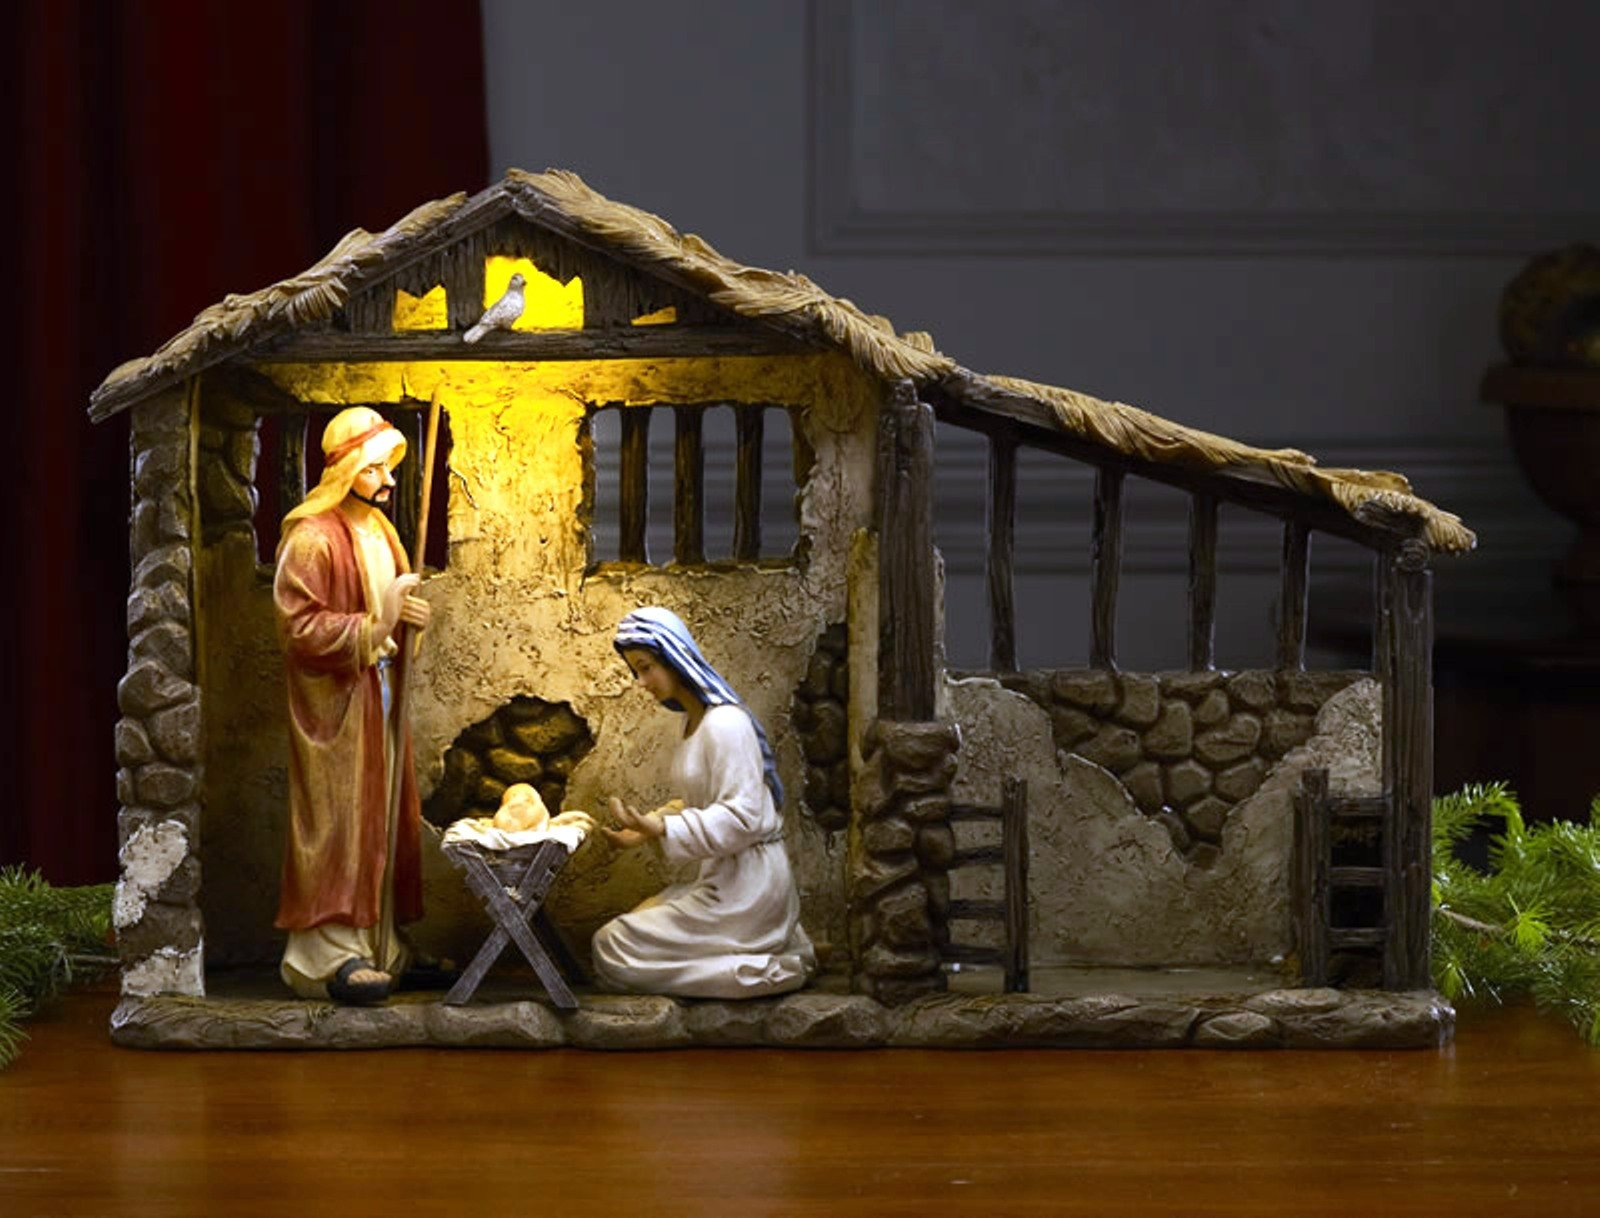 Deluxe Edition 16 Piece 14 inch Nativity Set with Real Frankincense Gold and Myrrh by Three Kings Gifts (Image #2)